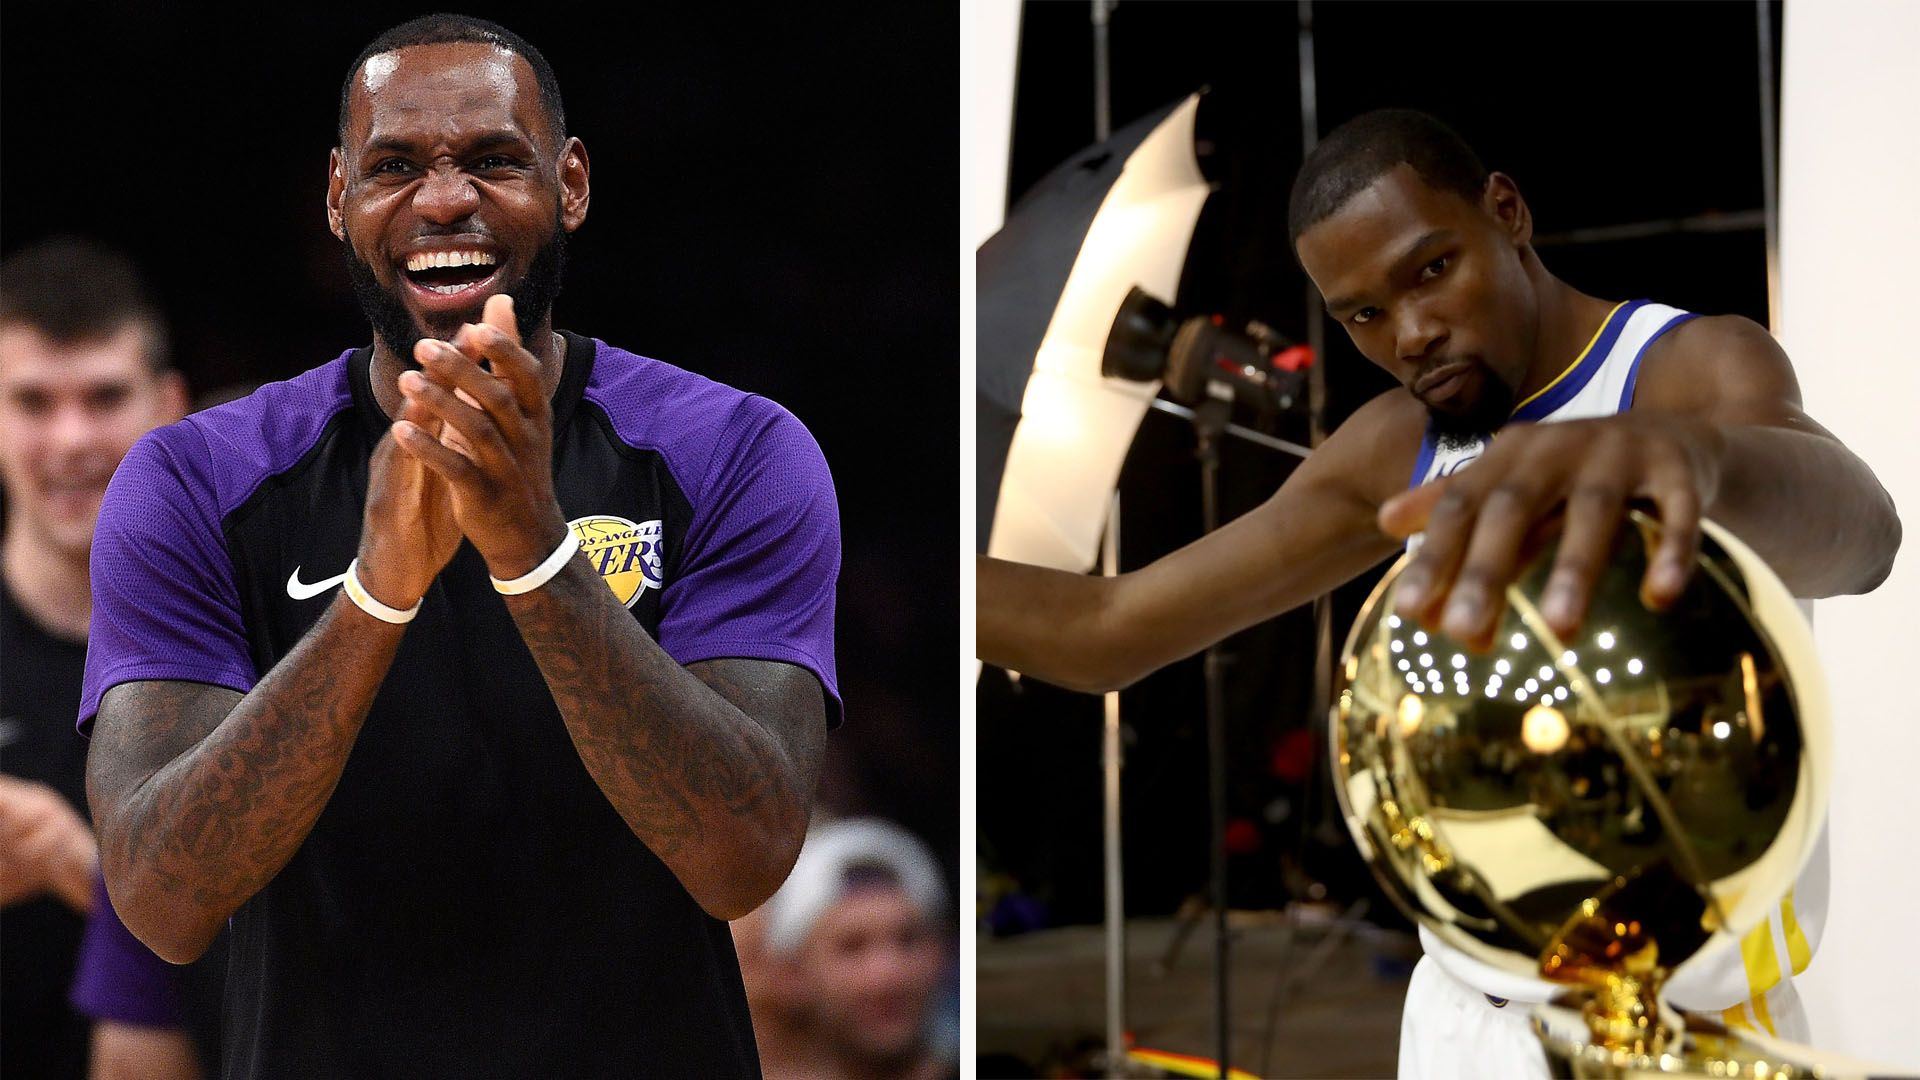 Lebron-james-and-kevin-durant_1tvr5ewhnvhqs1d5mscllyo7fo